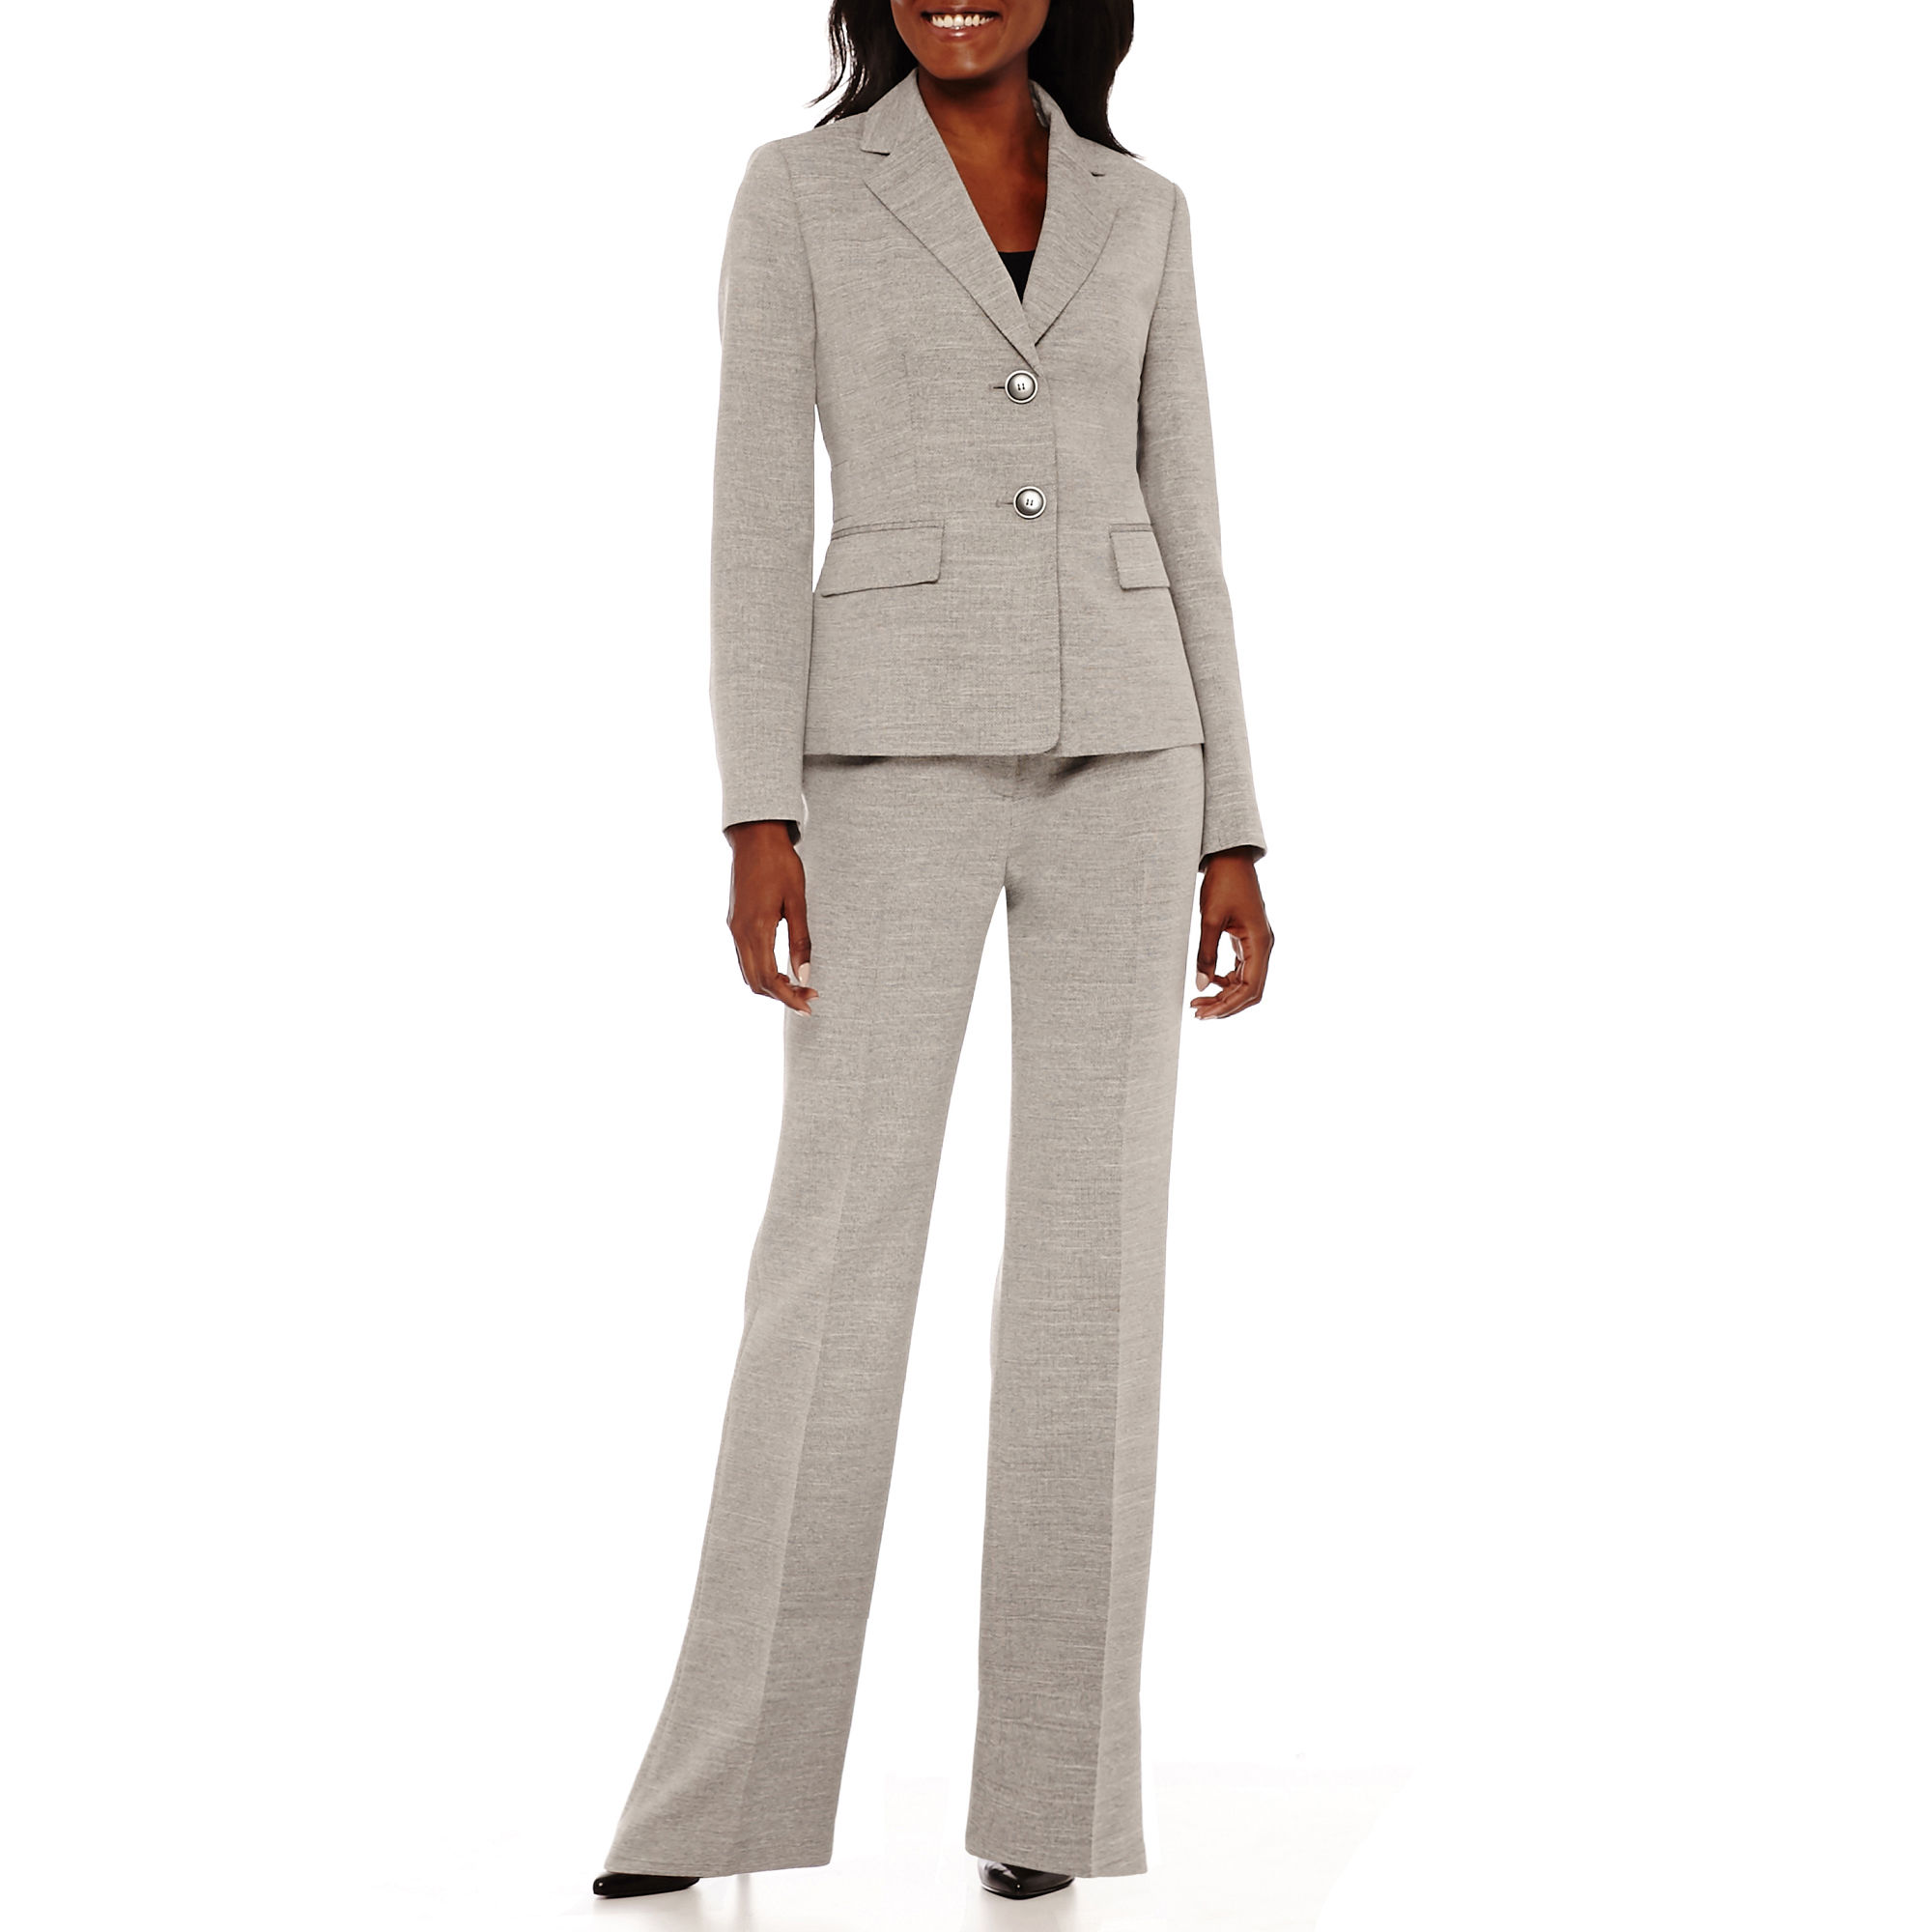 Brilliant Evening Pant Suits For WomenBuy Cheap Evening Pant Suits For Women